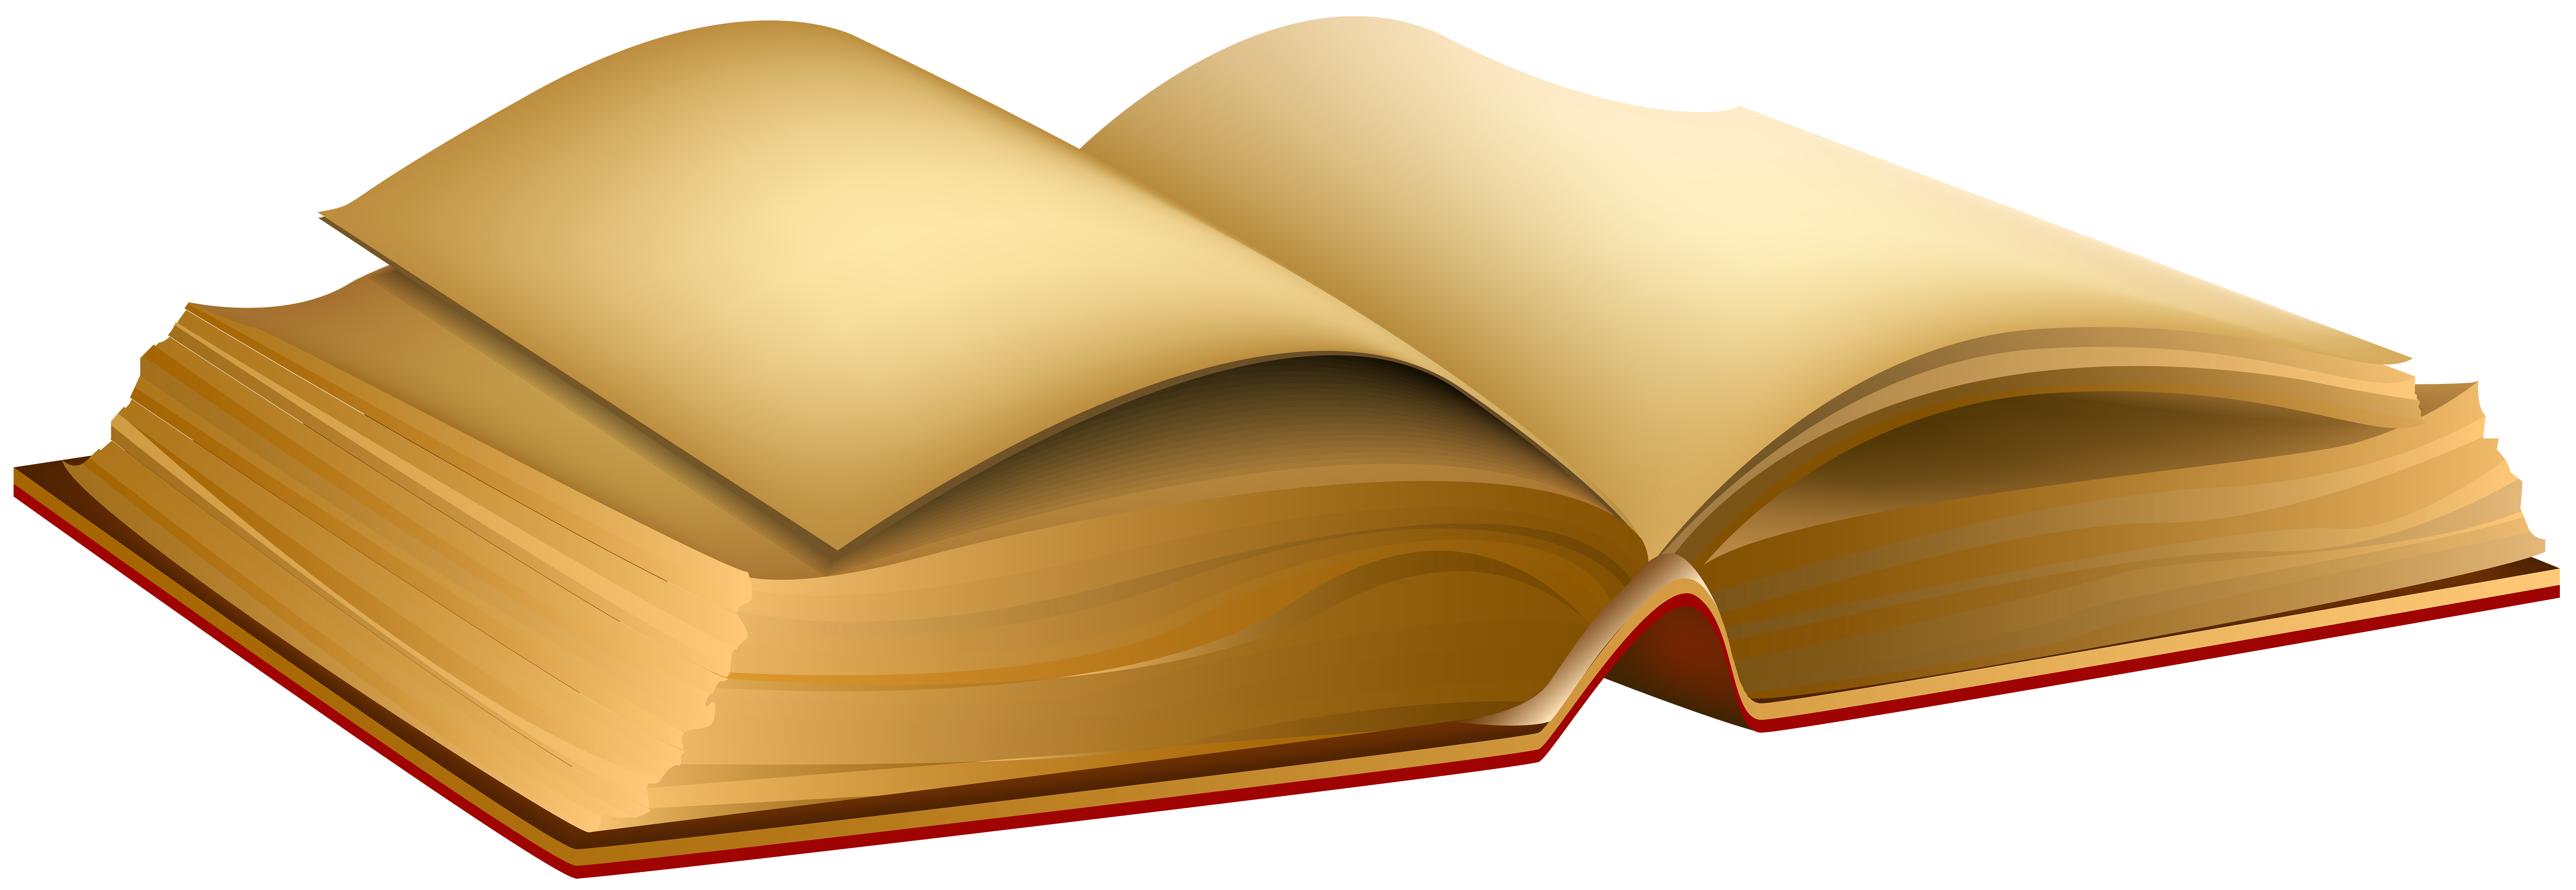 Book Old PNG Clipart.